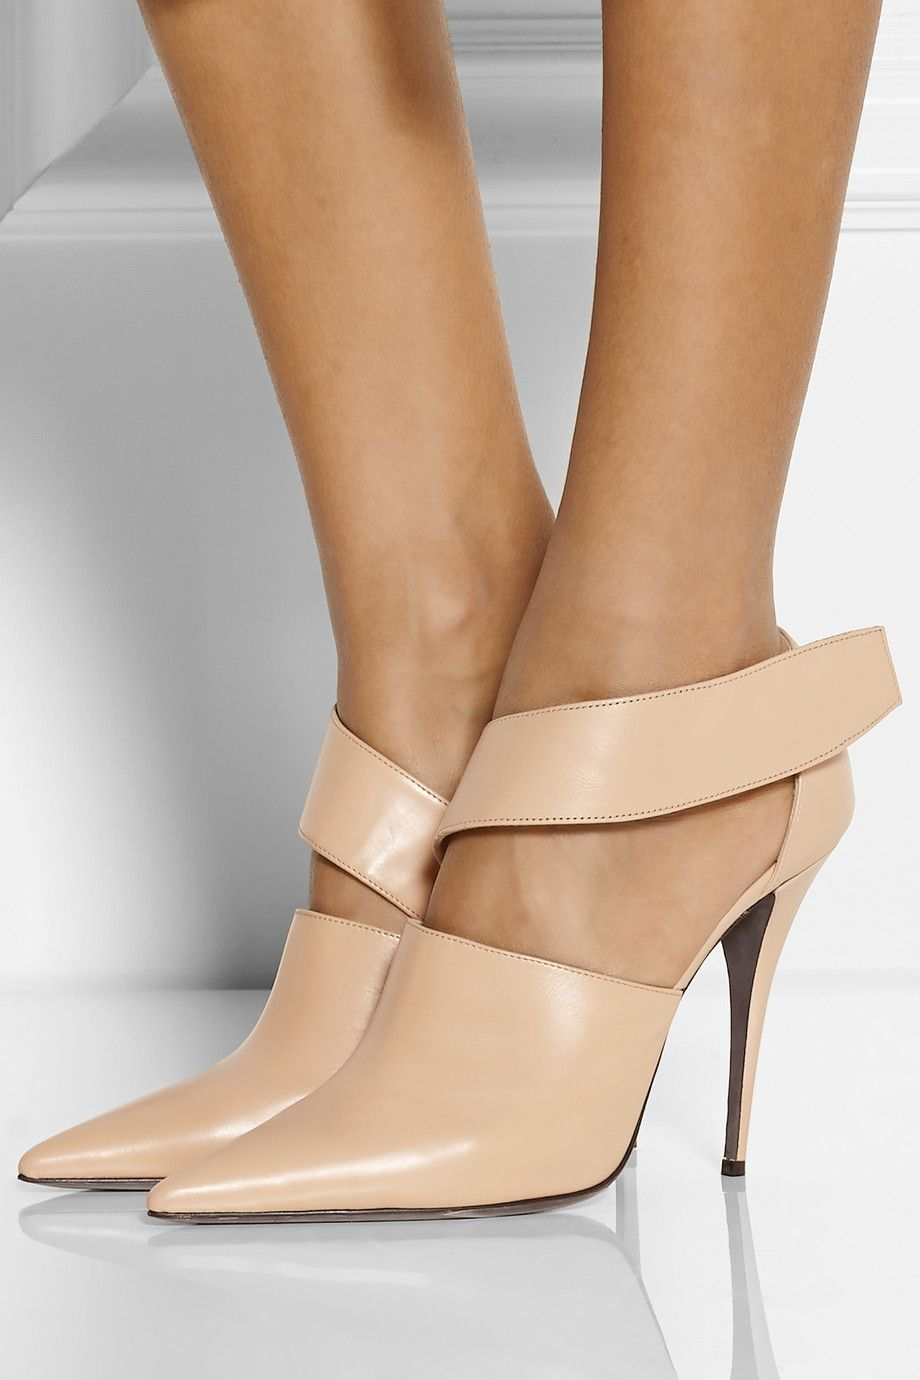 Cheap Wholesales Narciso Rodriguez Ankle Boots Leather Beige Camilla Cutout